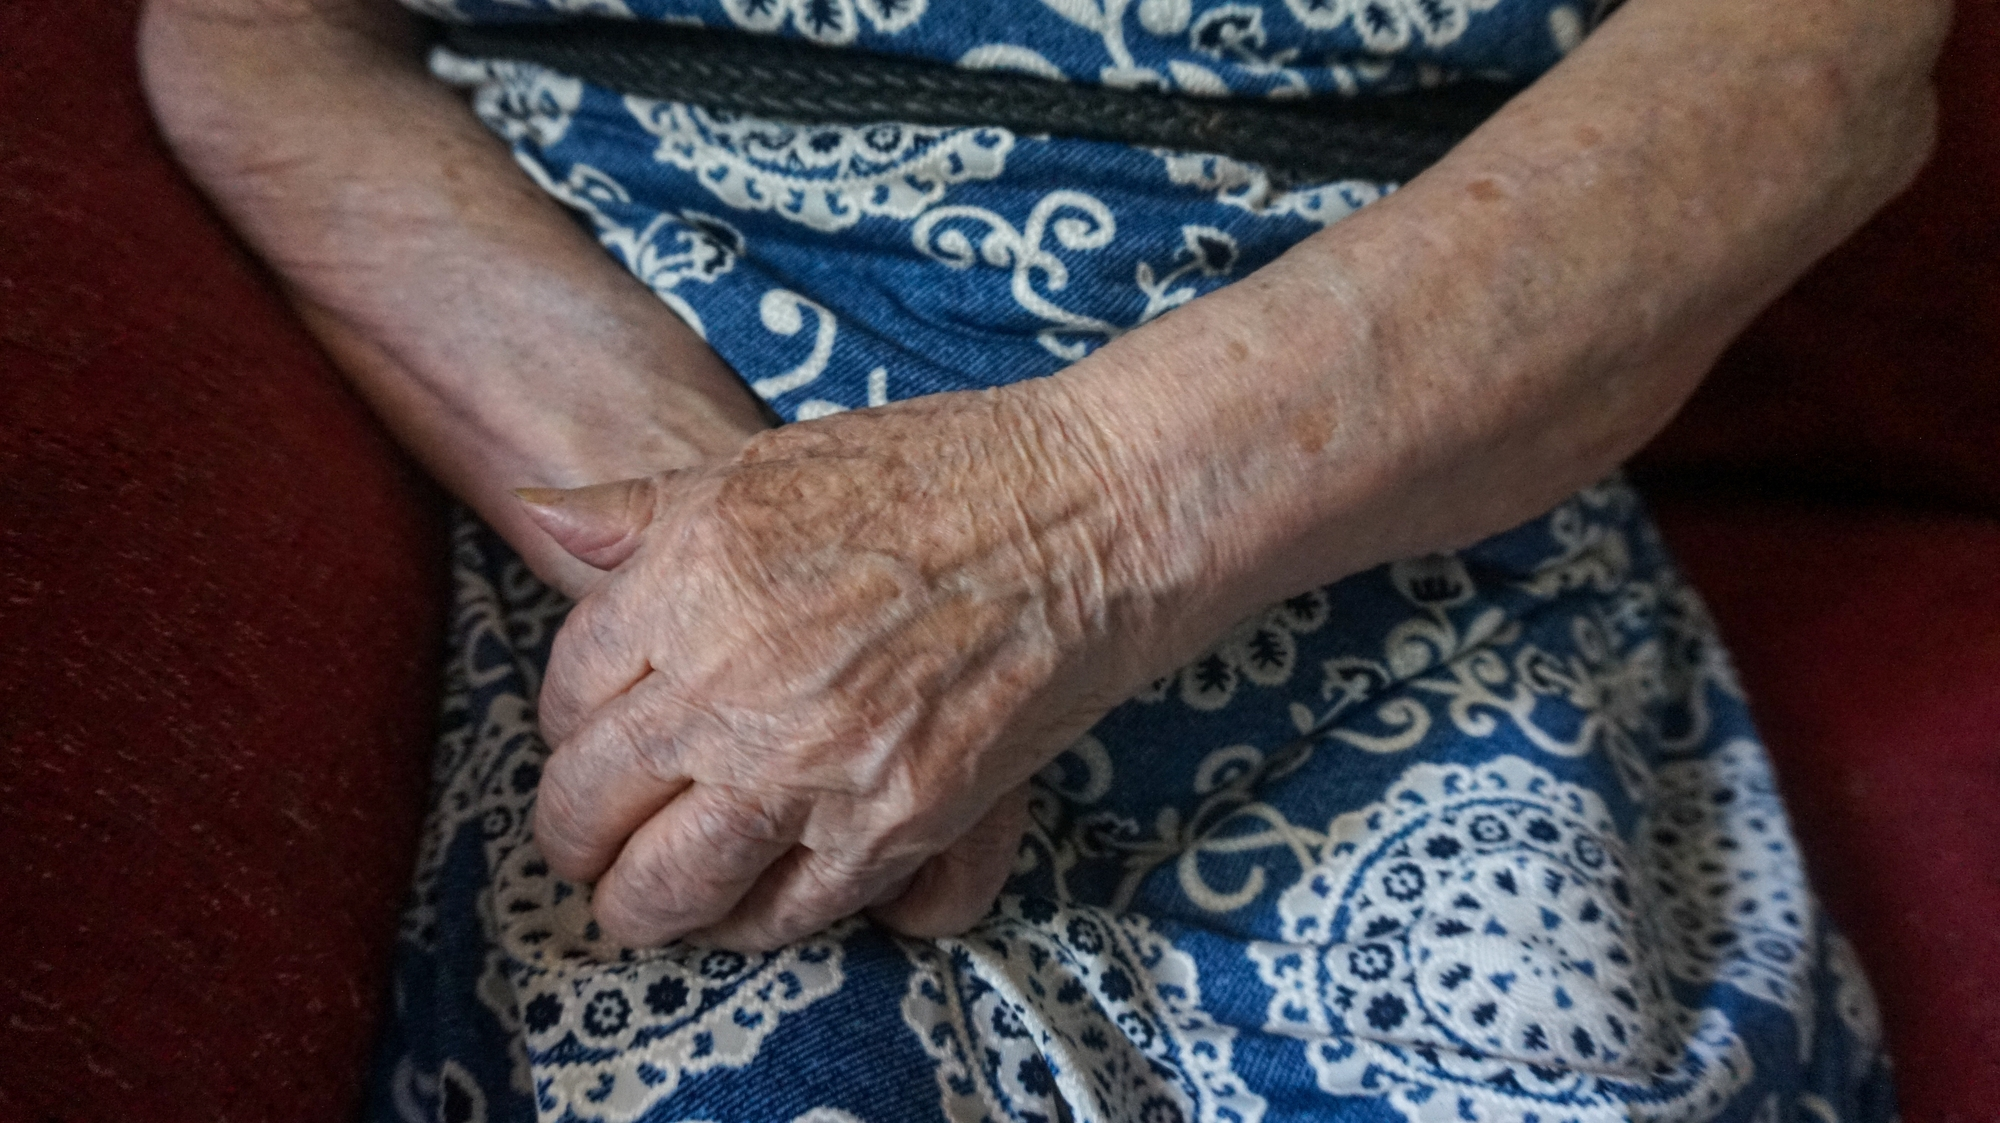 Healthy centenarians show diverse microbiome populations with enhanced levels of secondary bile acids